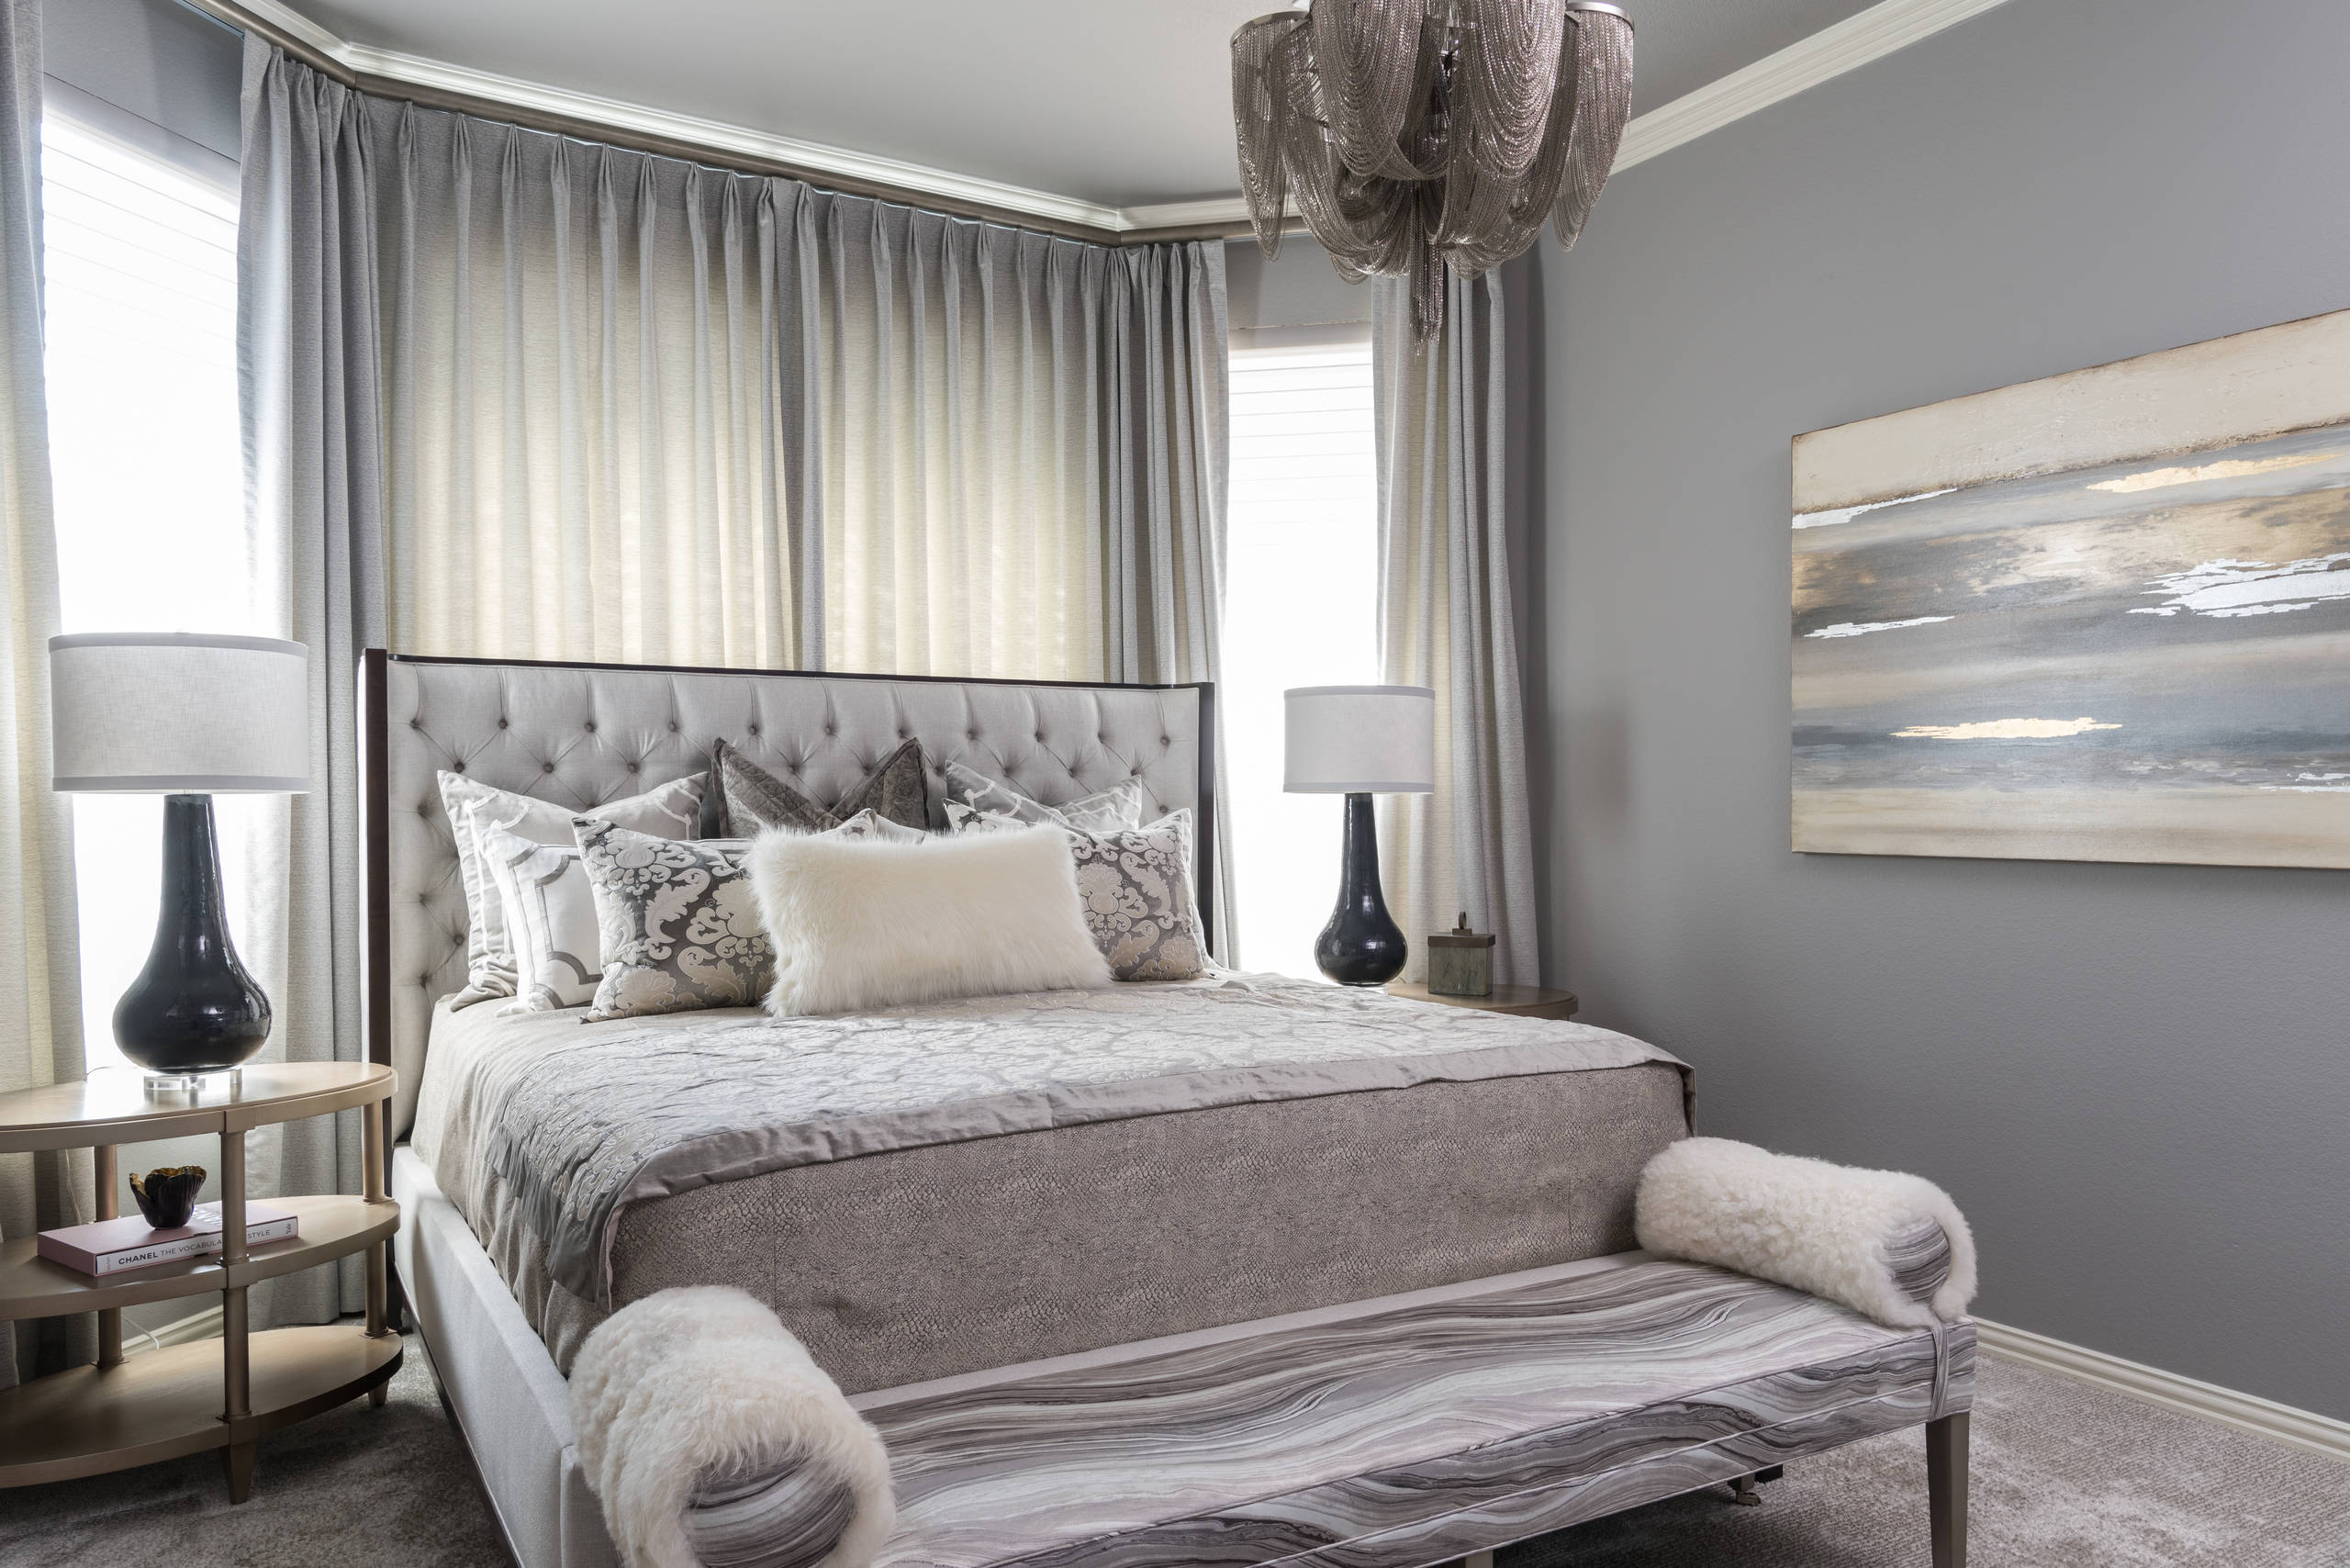 19 Blissful Bedroom Color Scheme Ideas - The LuxPad